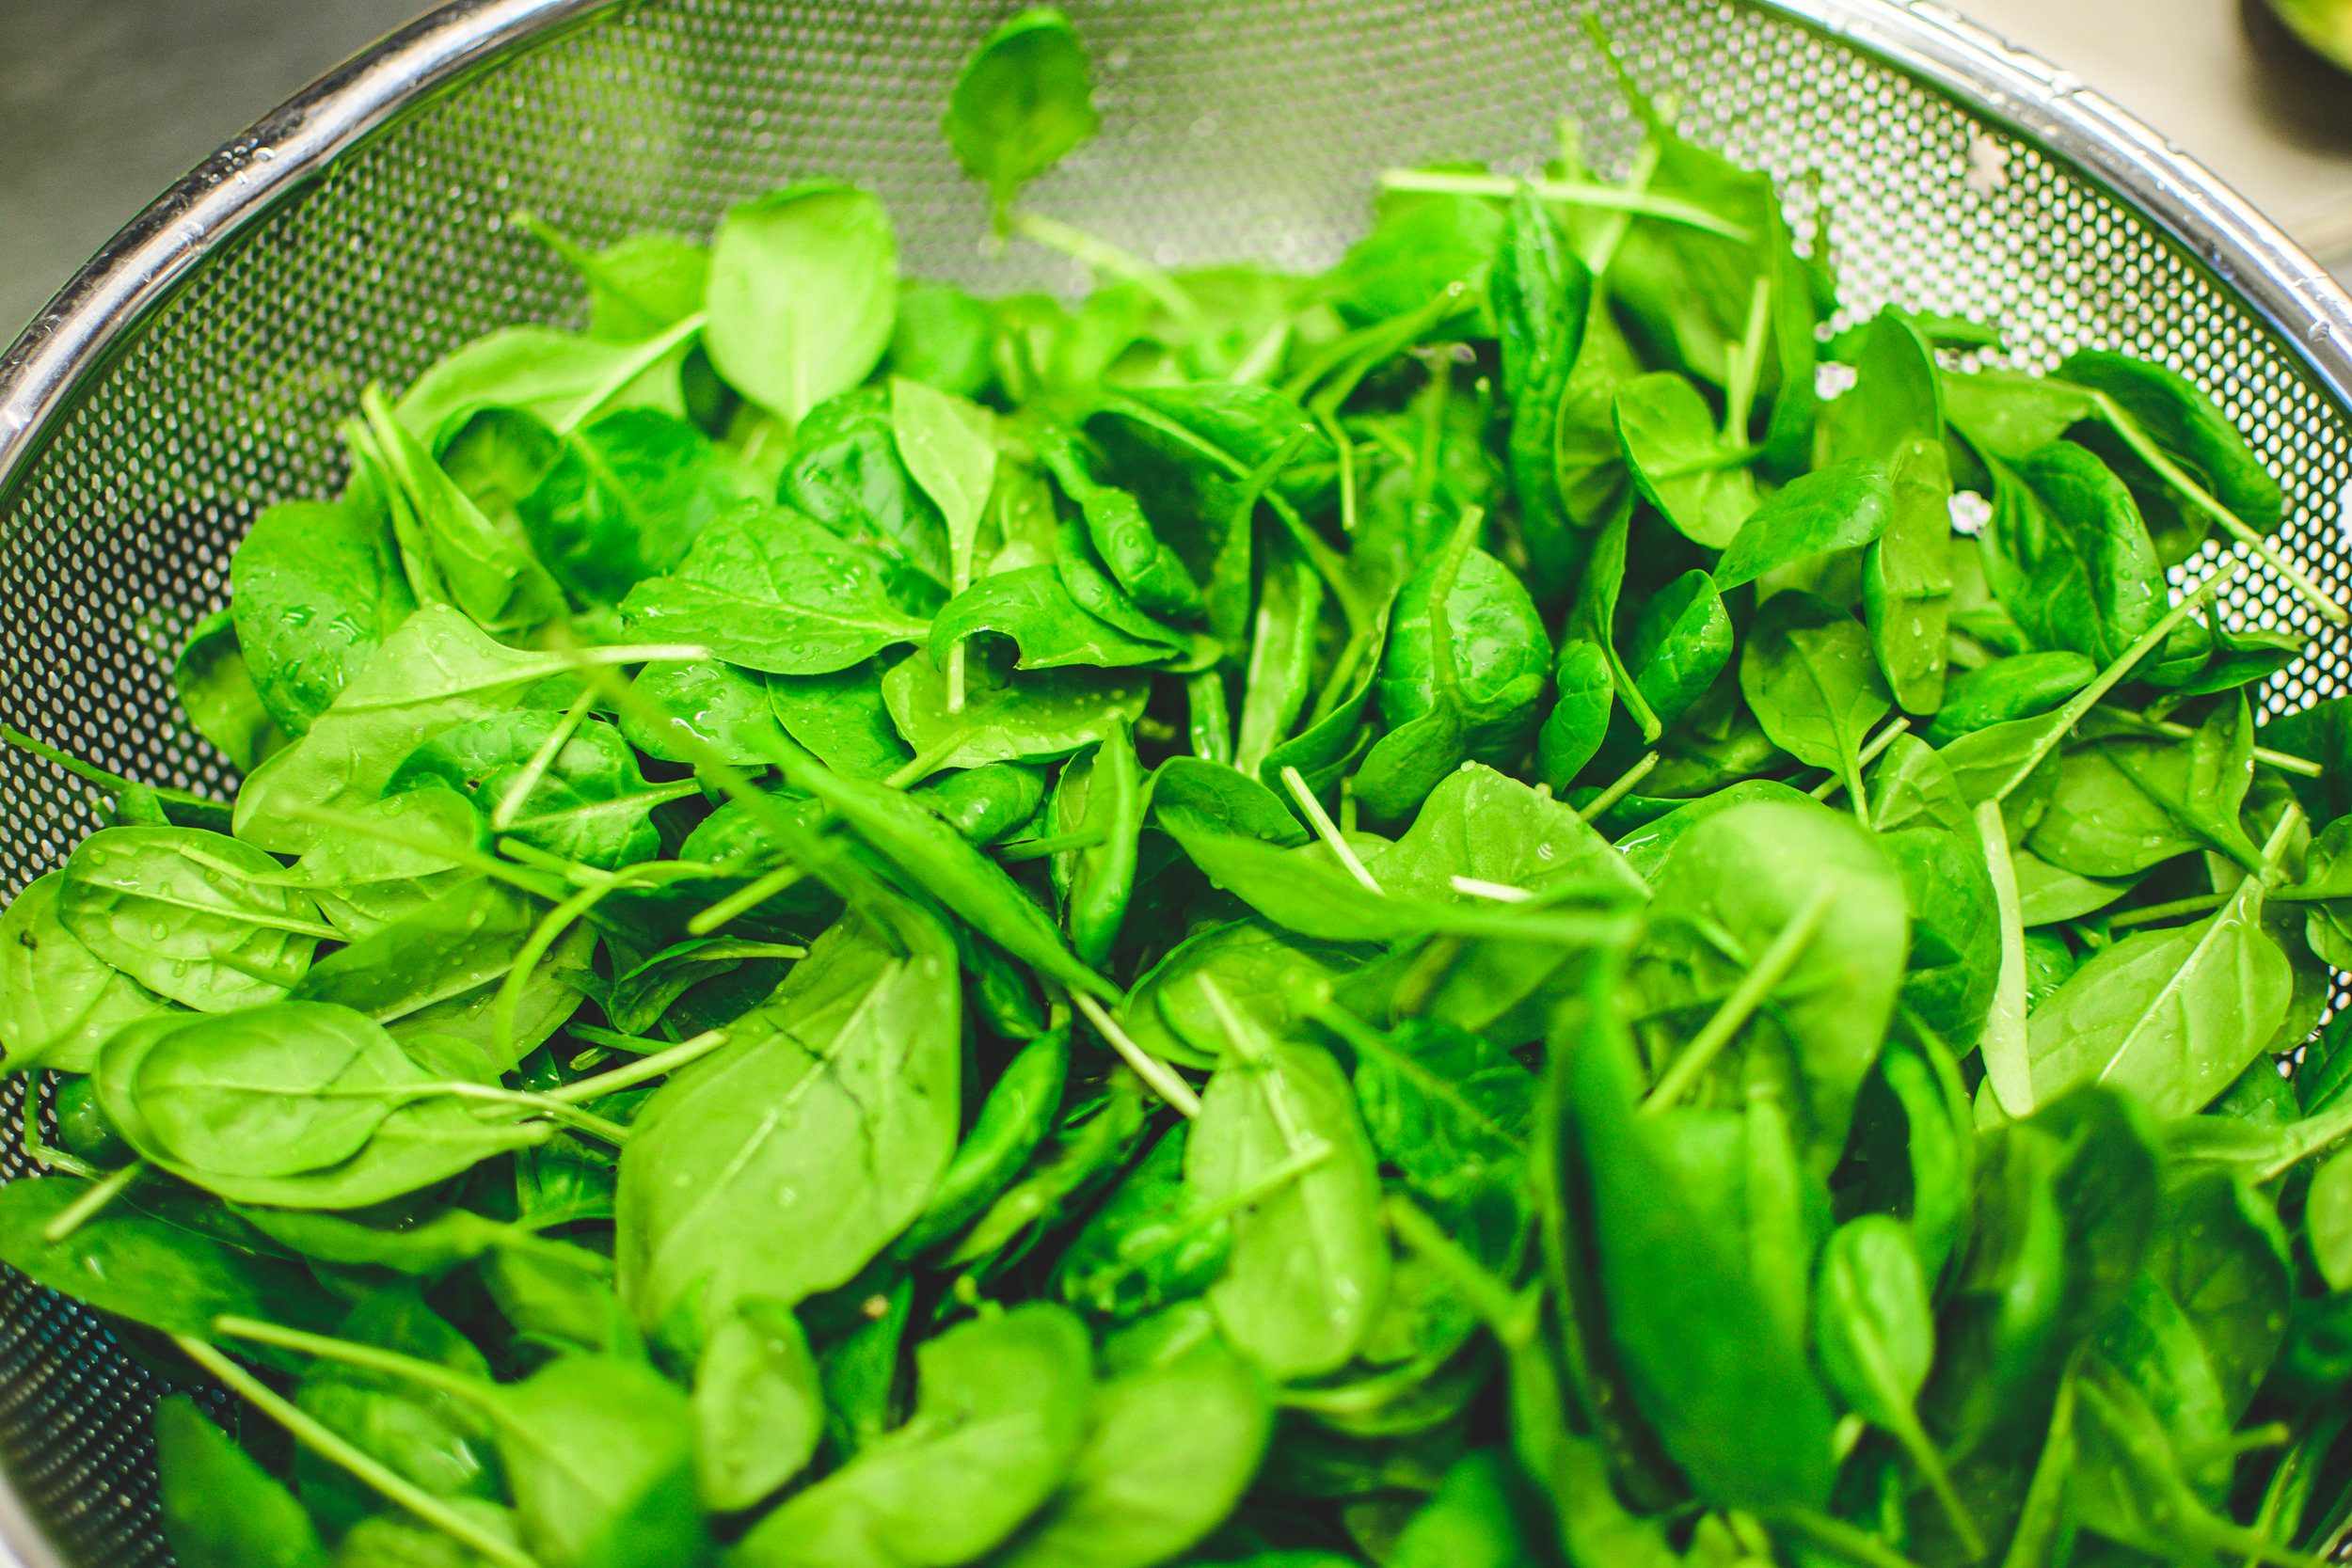 spinach - 97 percent of conventional spinach samples contained pesticide residues.Conventional spinach had relatively high concentrations of permethrin, a neurotoxic insecticide.